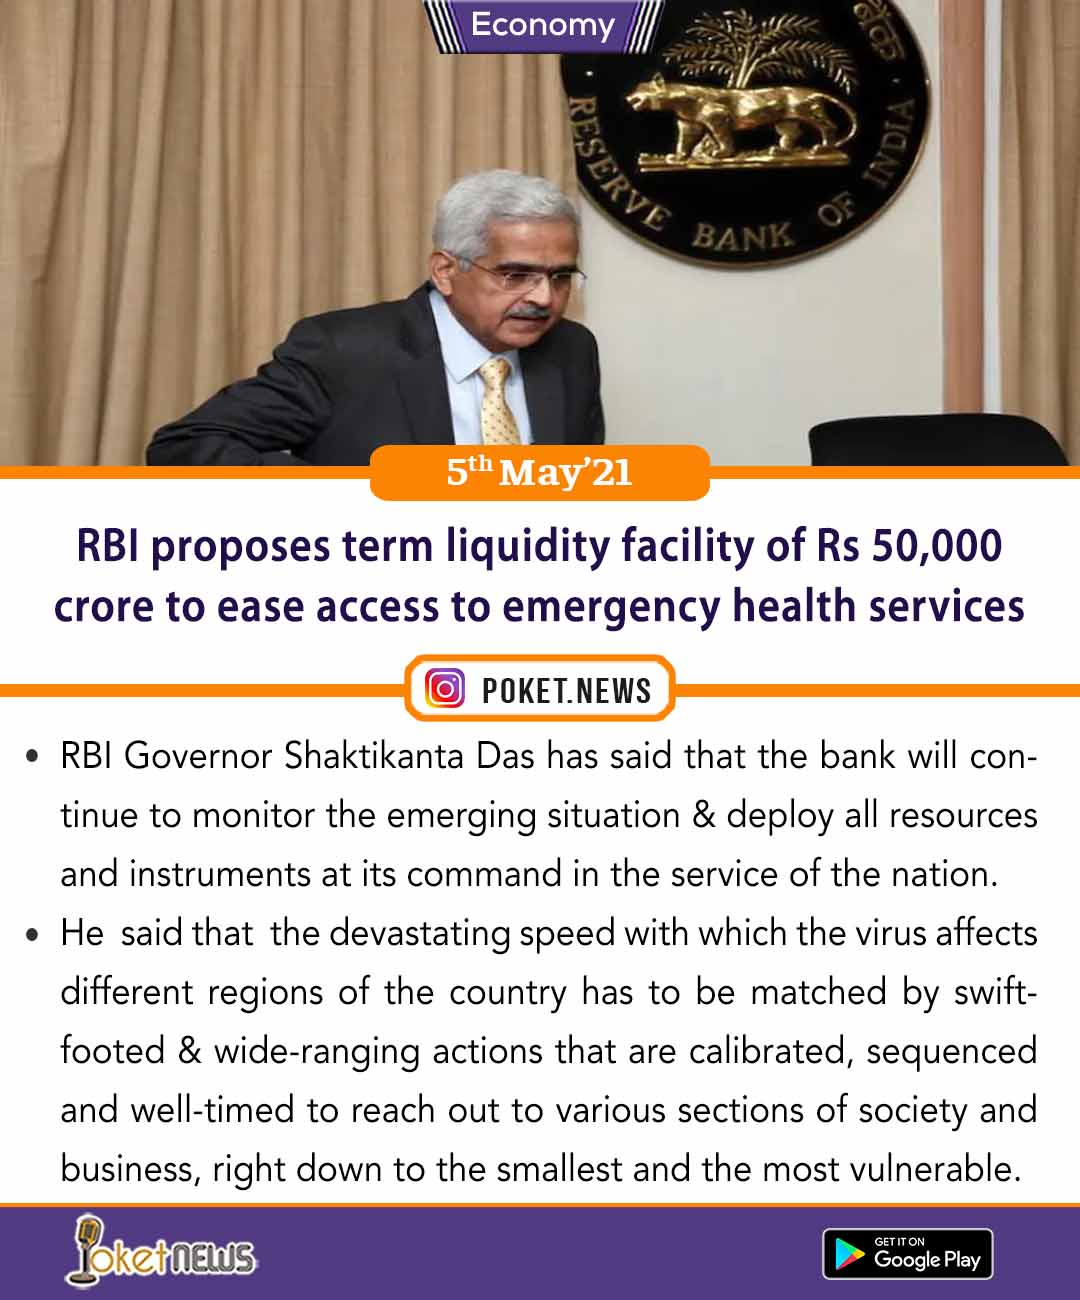 RBI proposes term liquidity facility of Rs 50,000 crore to ease access to emergency health services